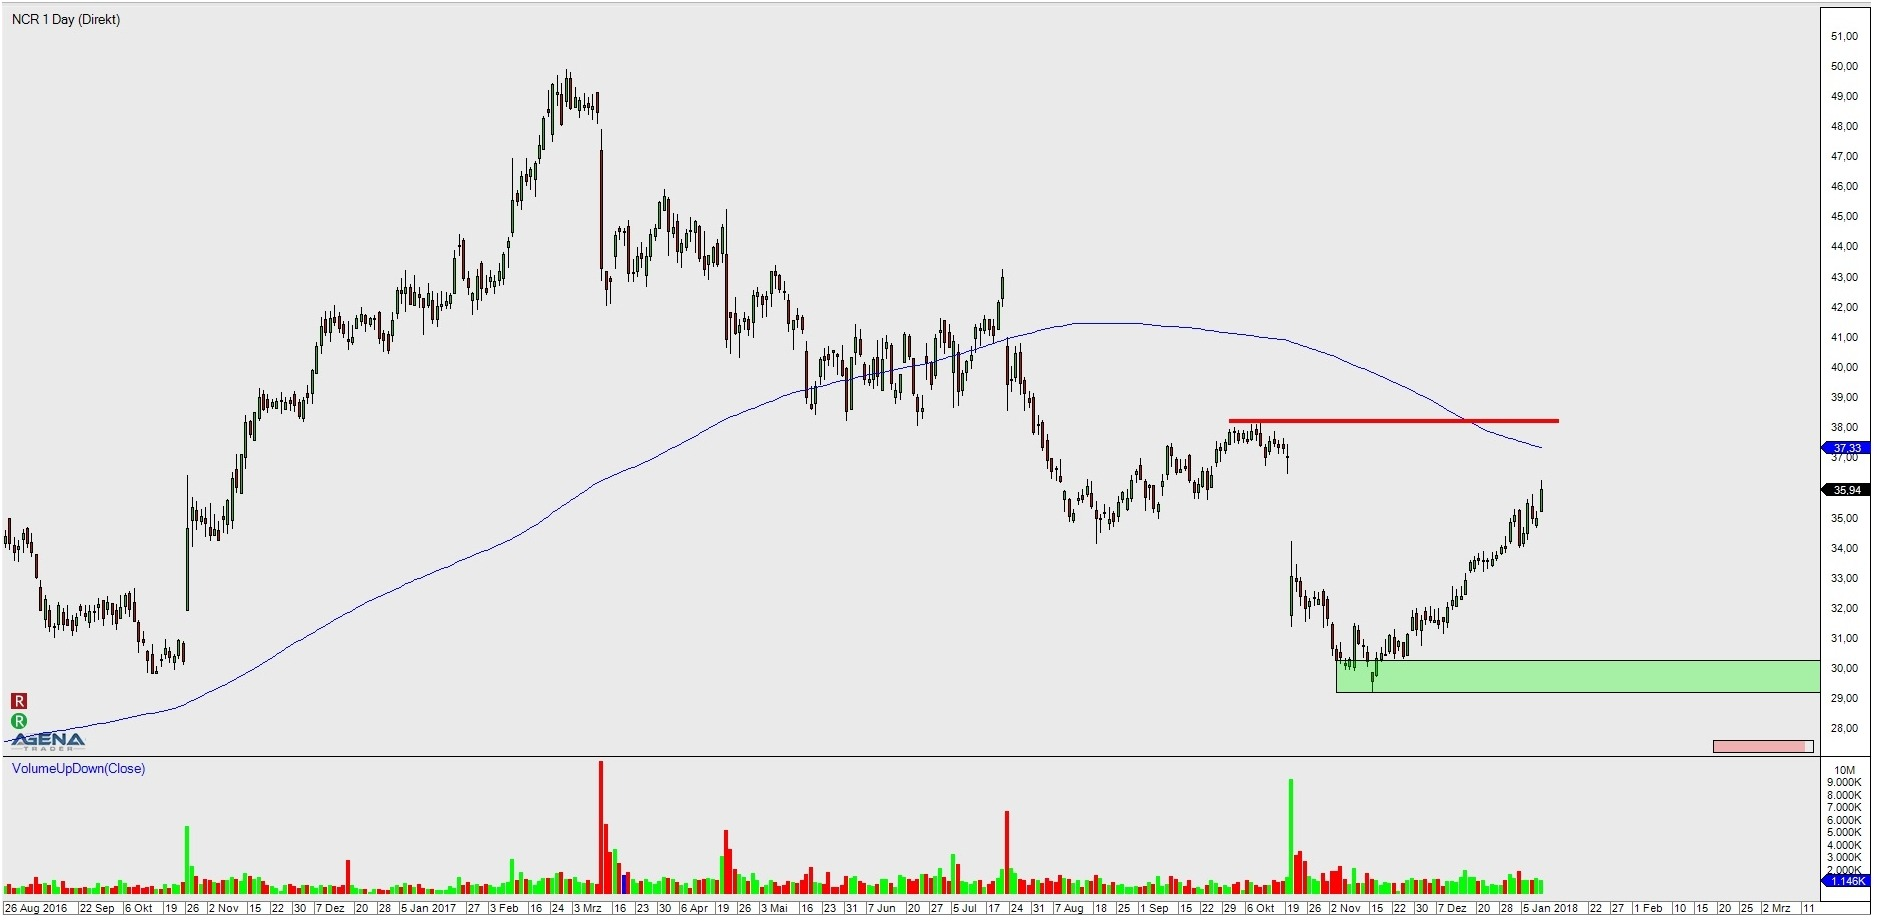 stock NCR daily chart with target and resistance